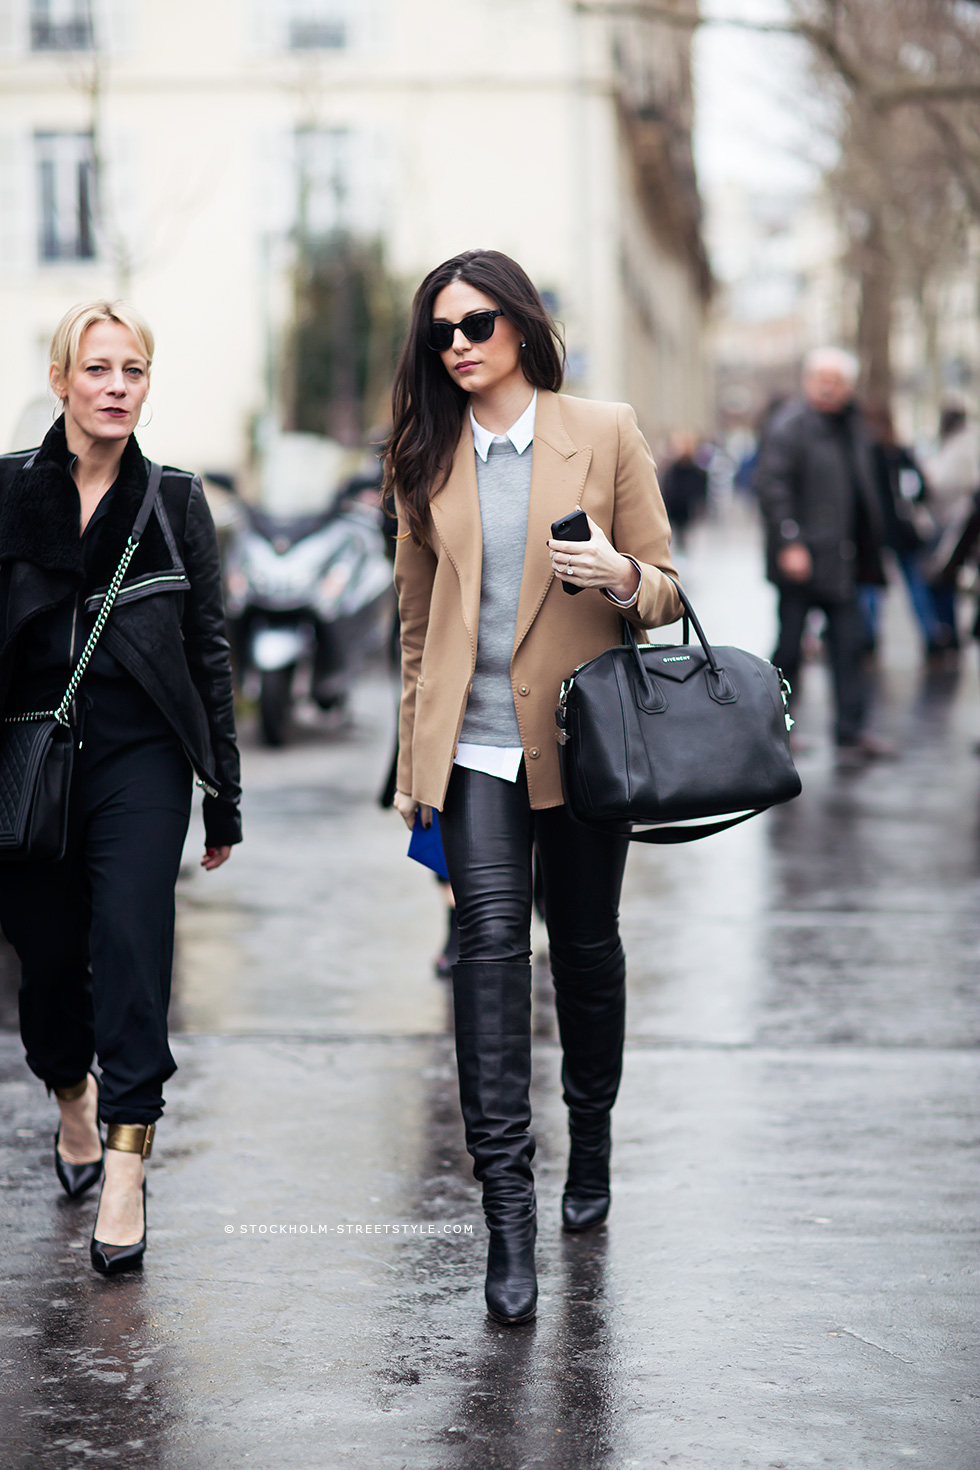 In The Moment | Carolines Mode Stockholm Street Style | Pinterest Picks - Winter Layers